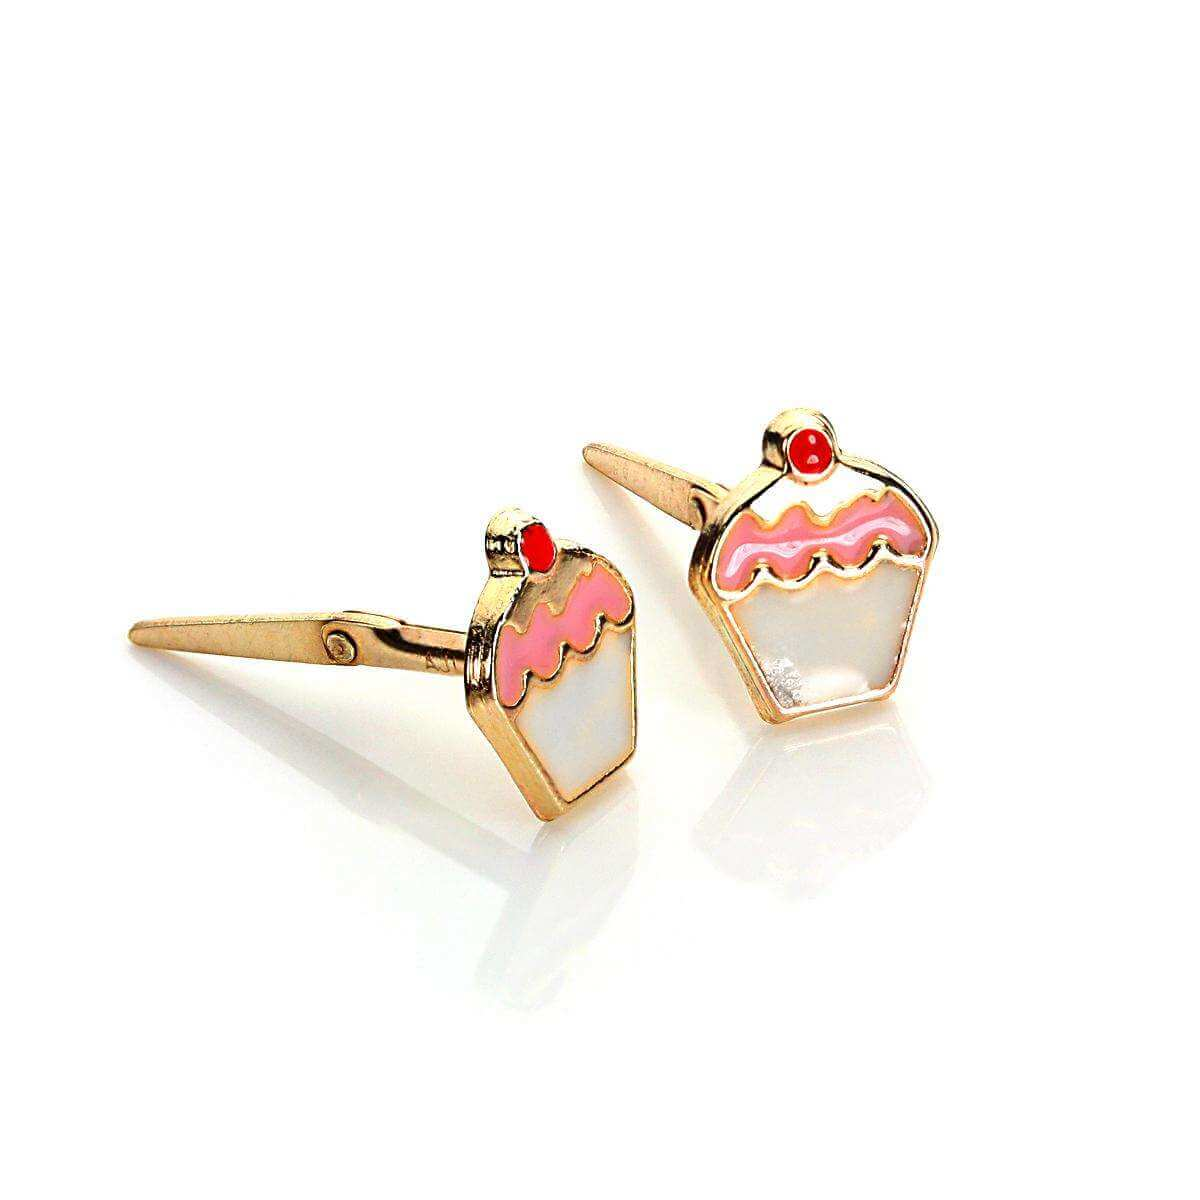 Andralok 9ct Yellow Gold Enamelled Cherry Cup Cake Stud Earrings